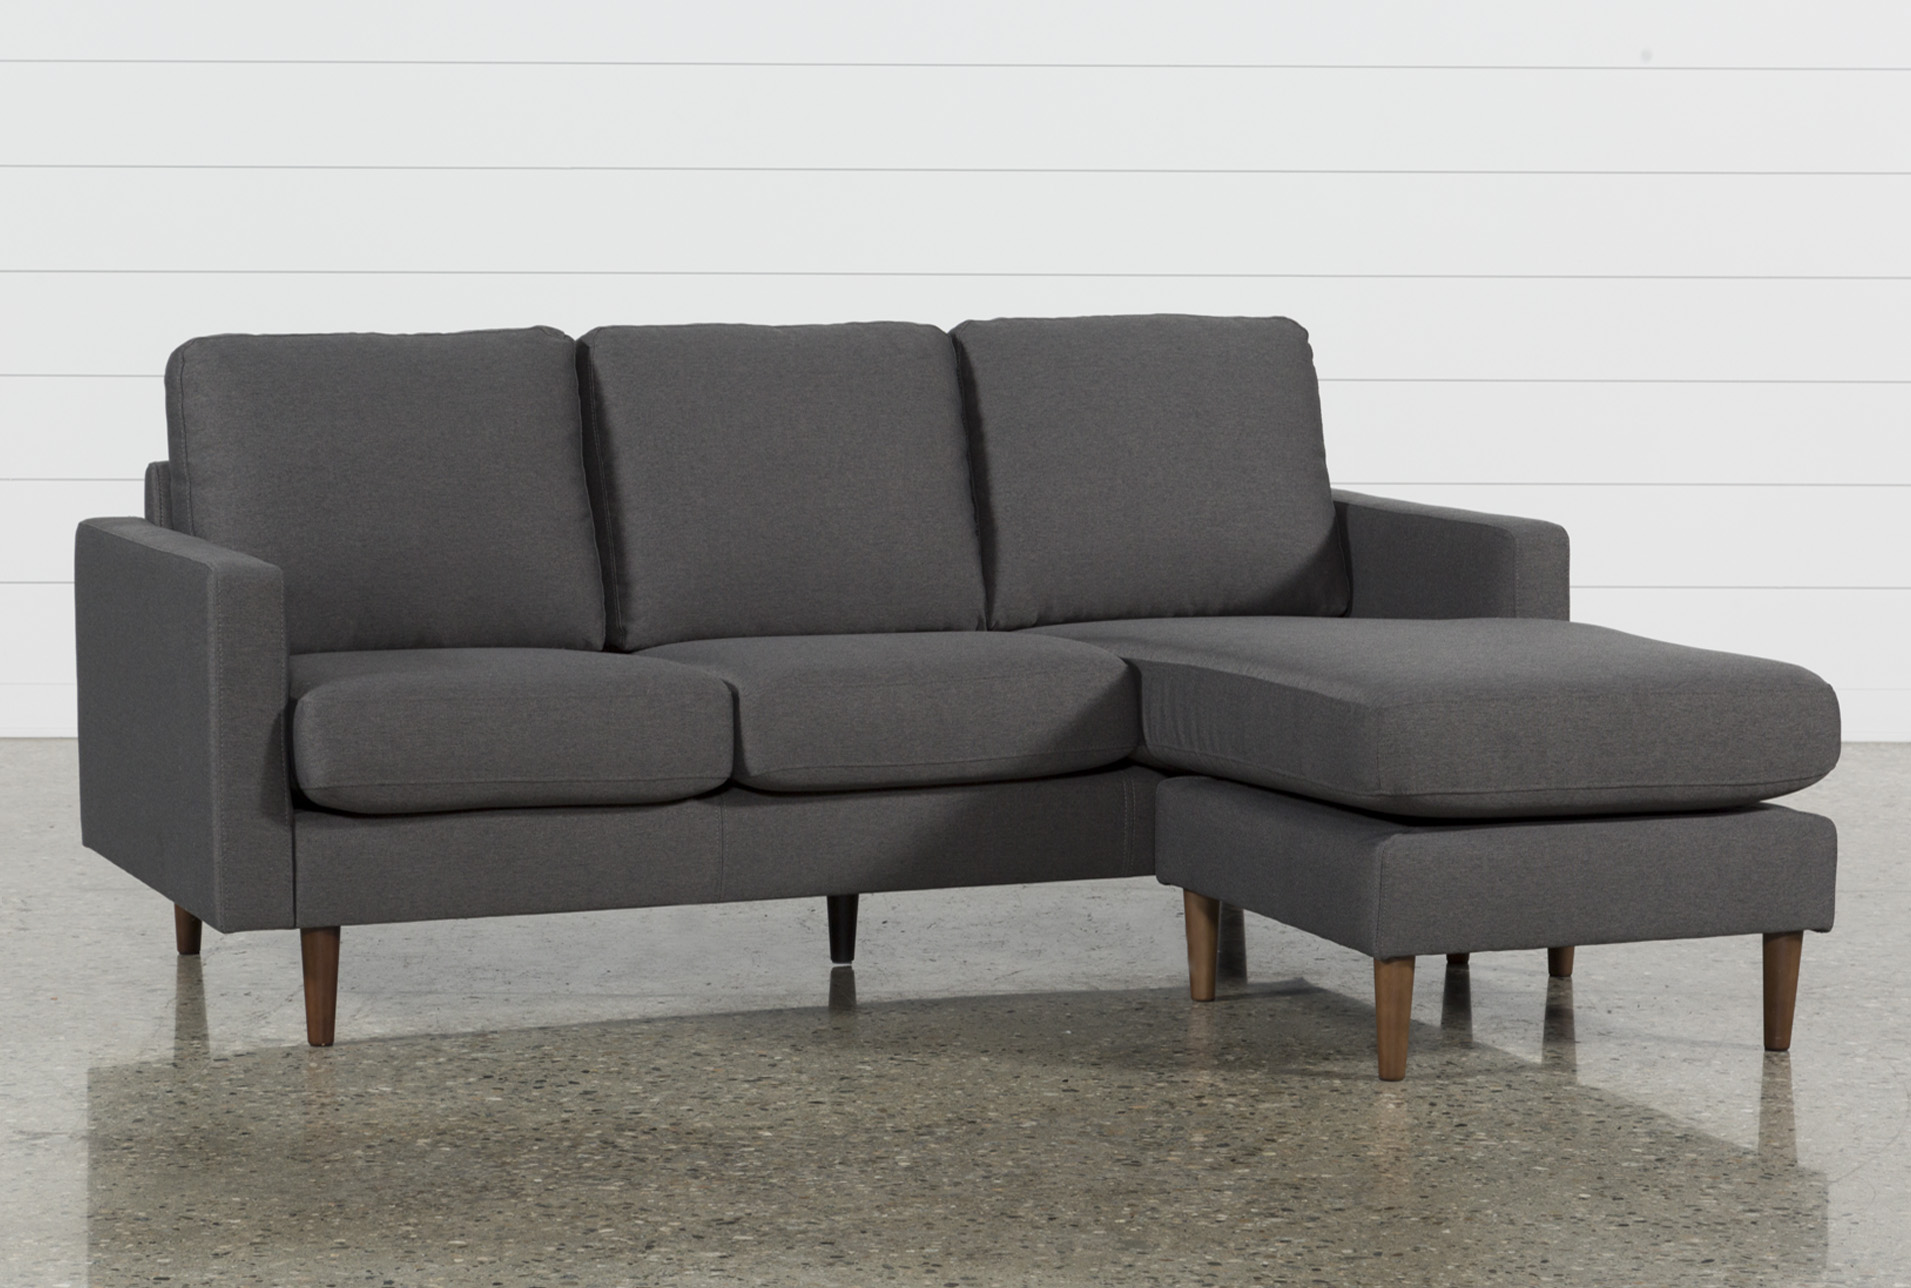 Superb David Dark Grey Reversible Sofa Chaise (Qty: 1) Has Been Successfully Added  To Your Cart.